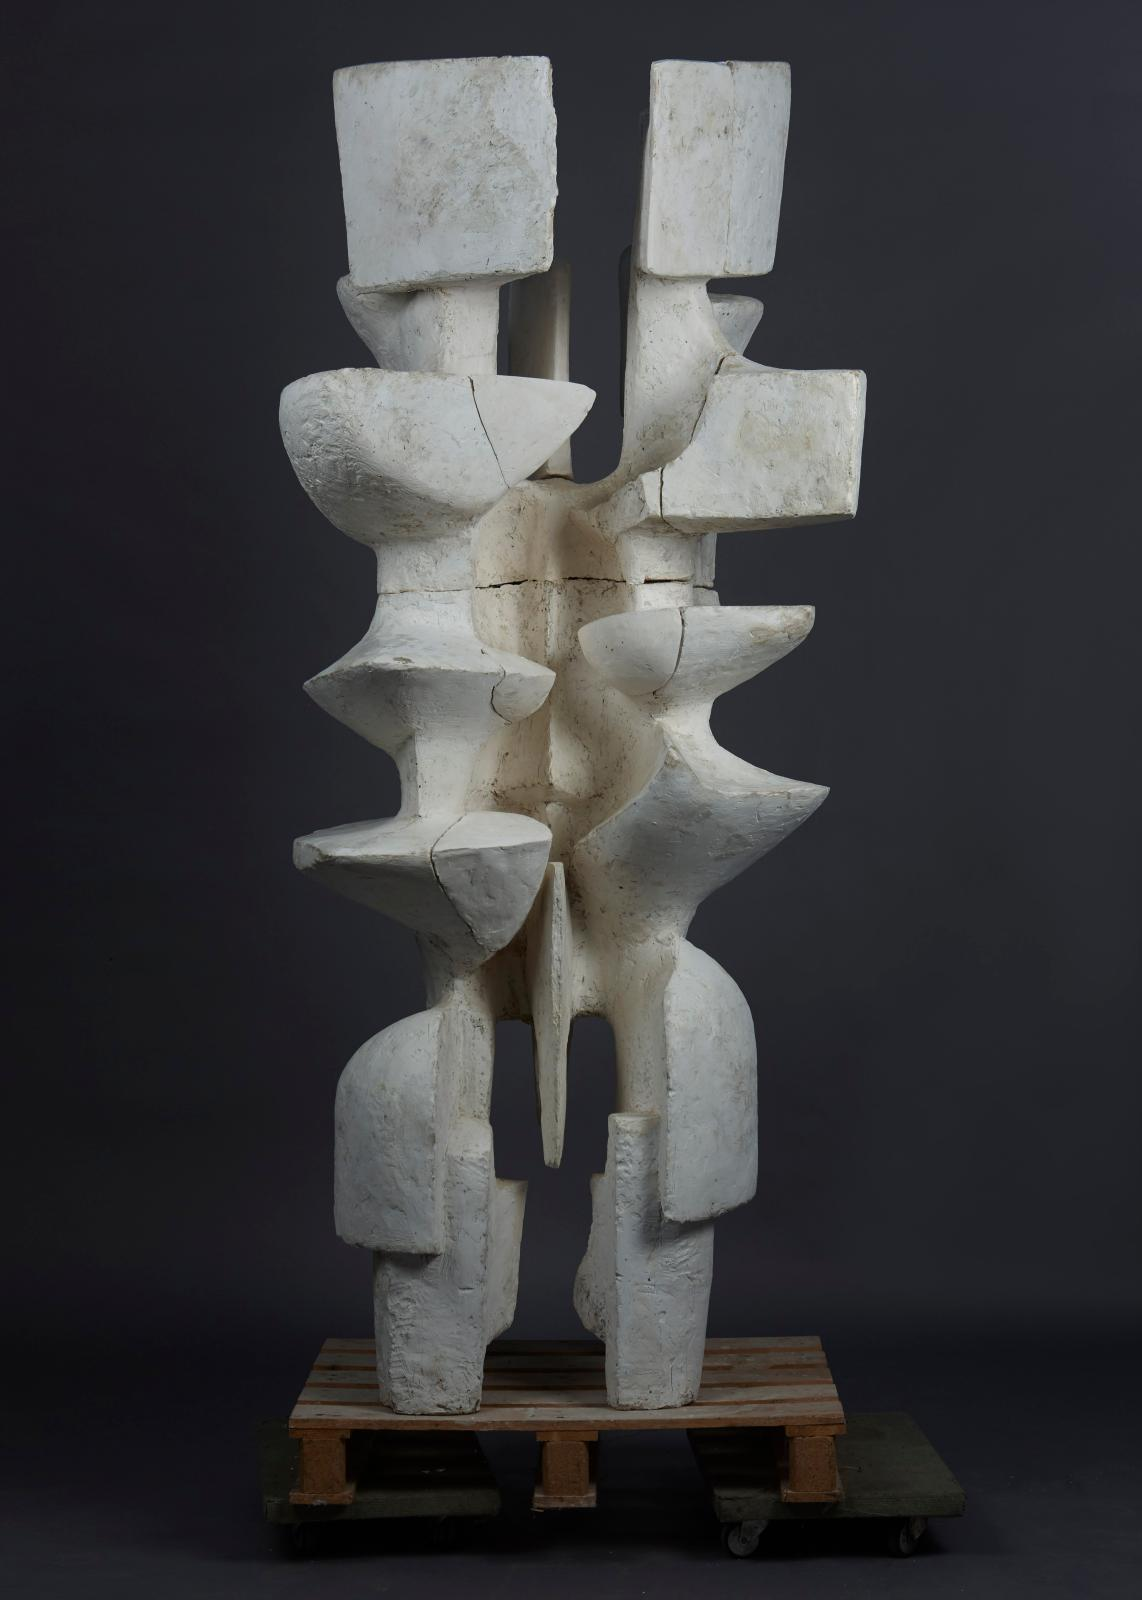 "Alicia Penalba (1913-1982), ""Grand double"", 1962, sculpture, 225 x 100 x 90 cm. Galerie Jean-Marc Lelouch."